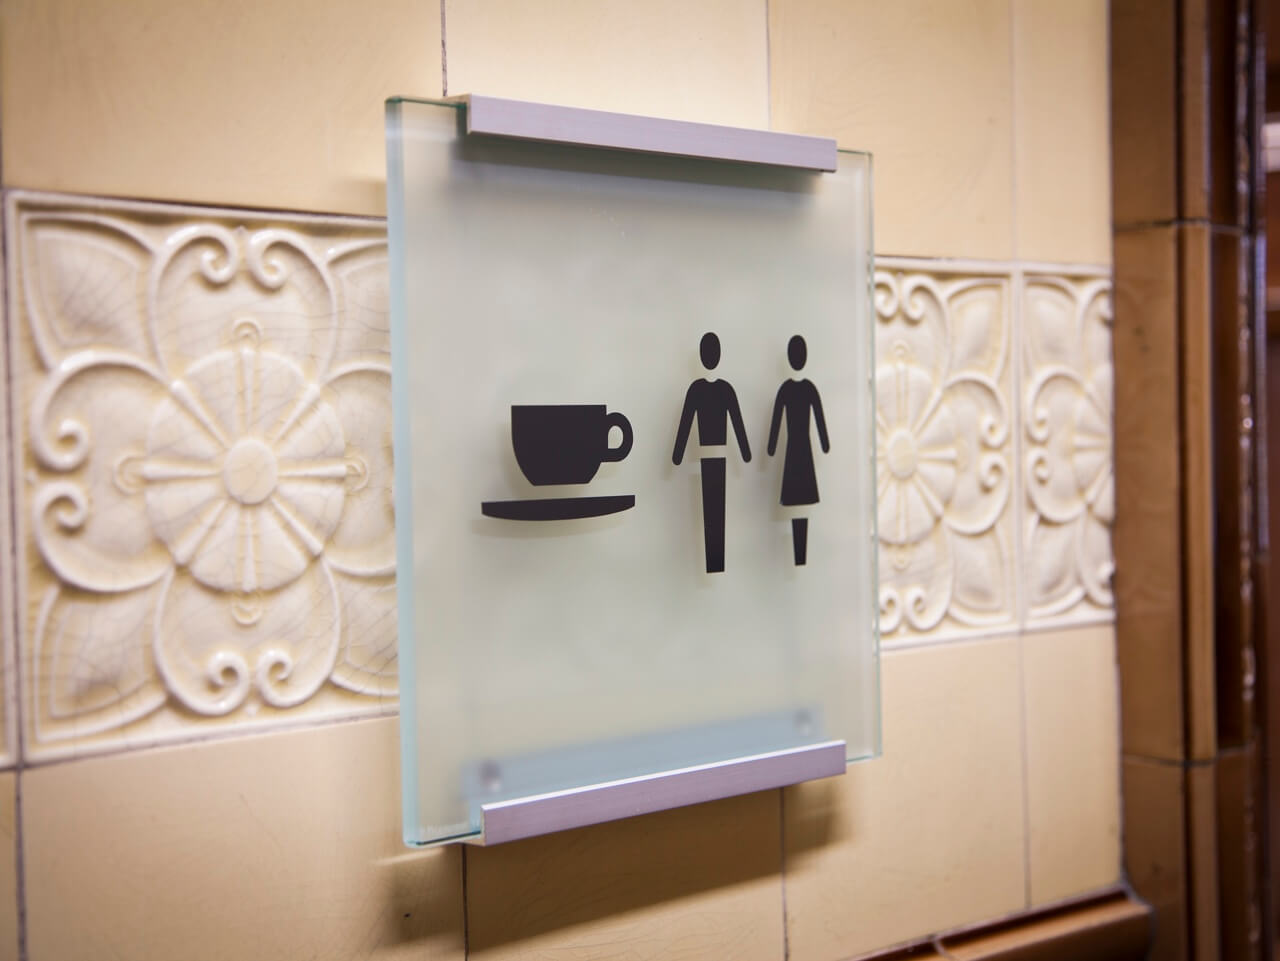 A glass wayfinding sign on the wall with logos for the cafe and the bathrooms